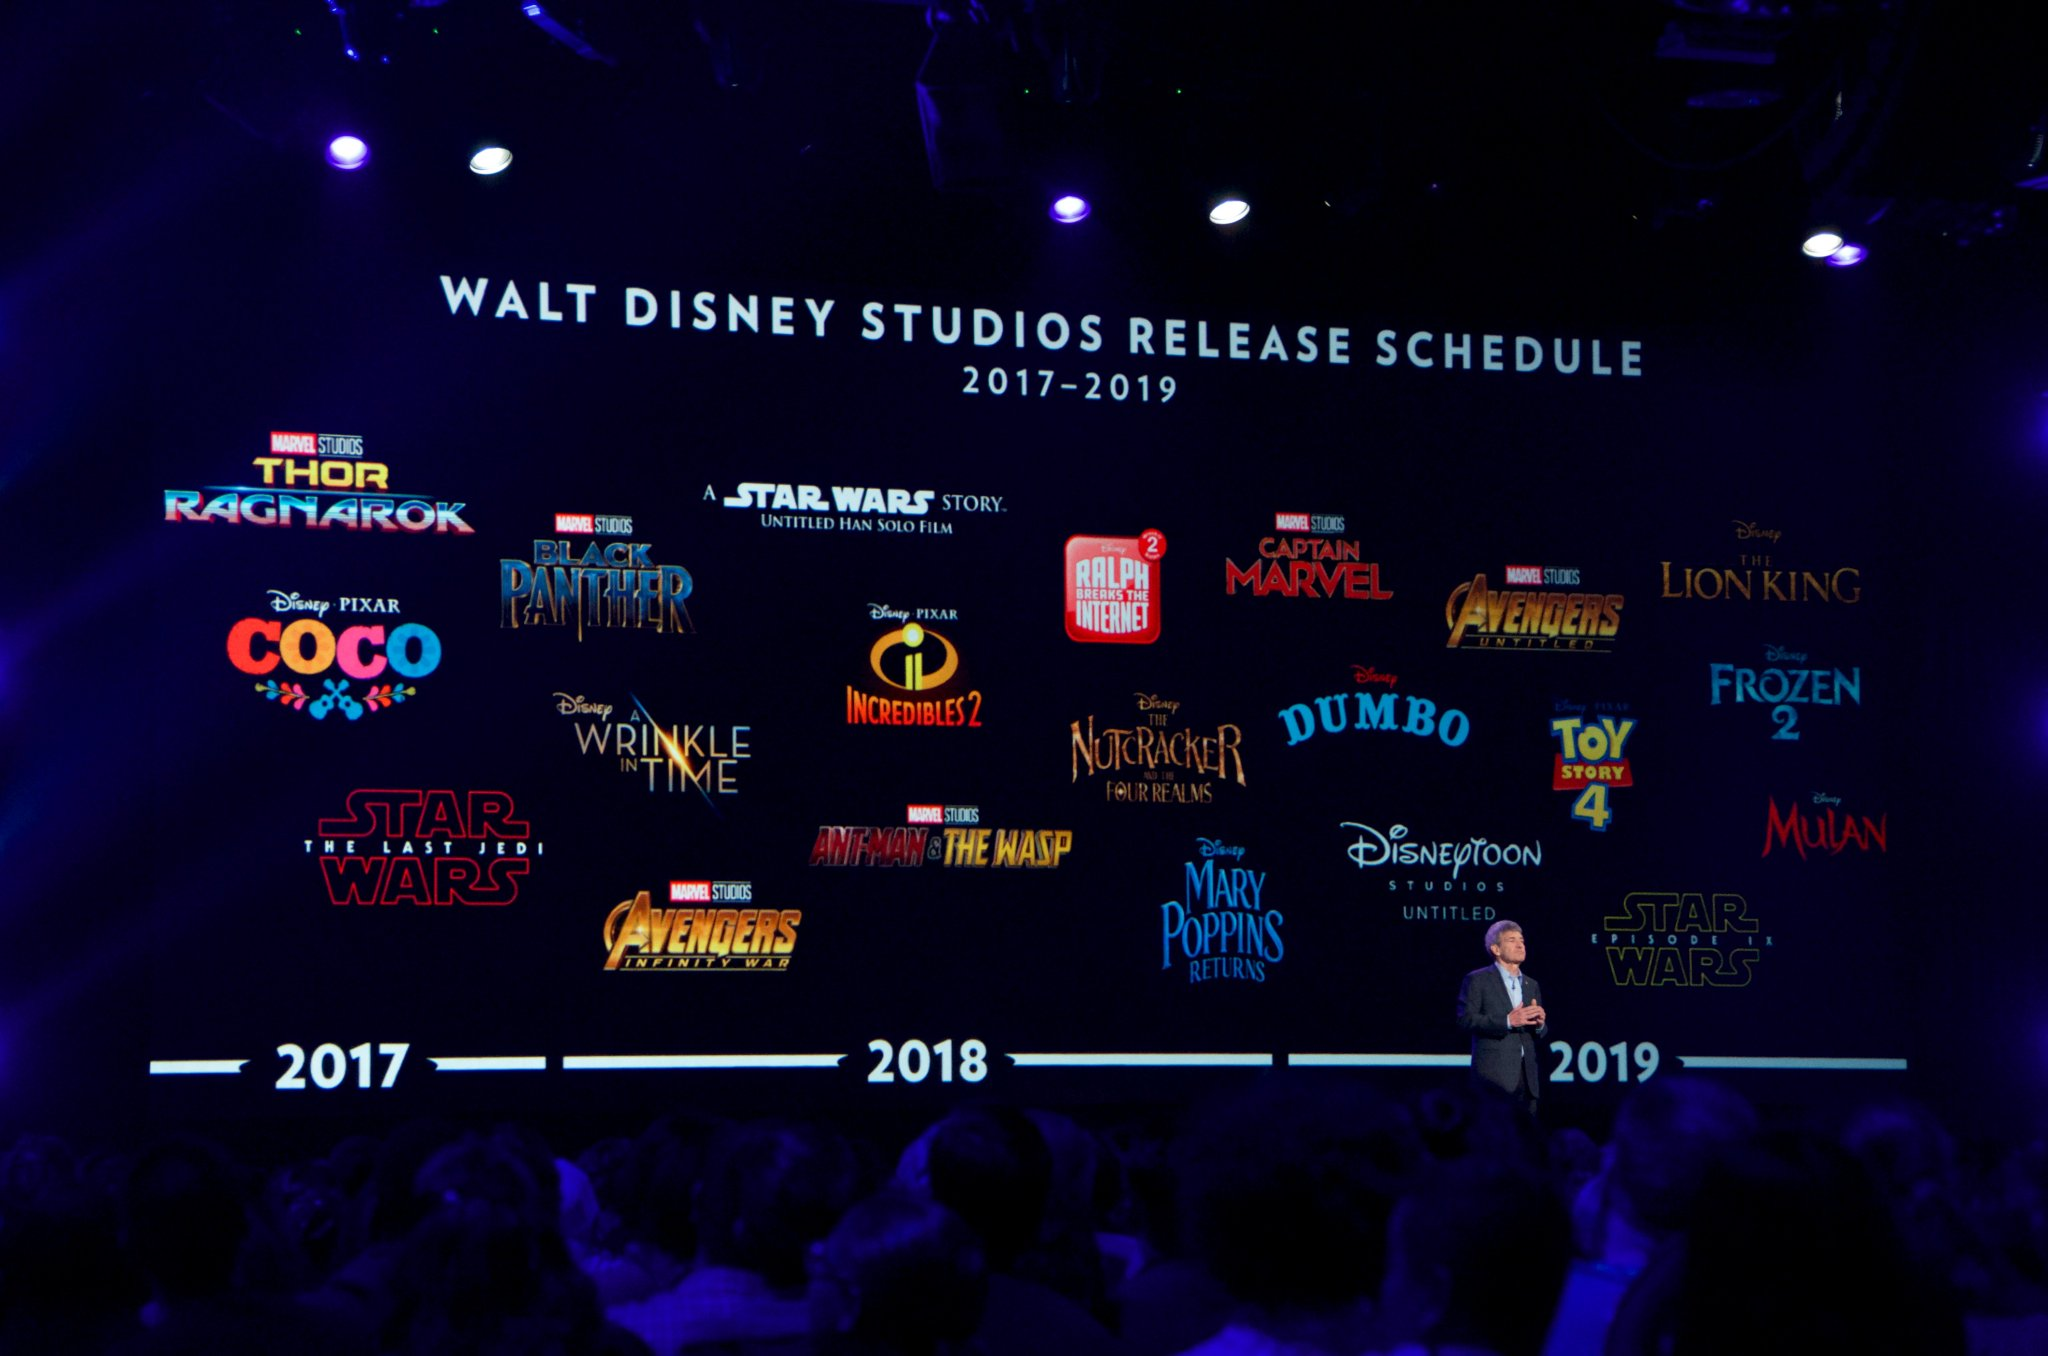 All Movies Coming Out This Year 2018 With Release Dates And More